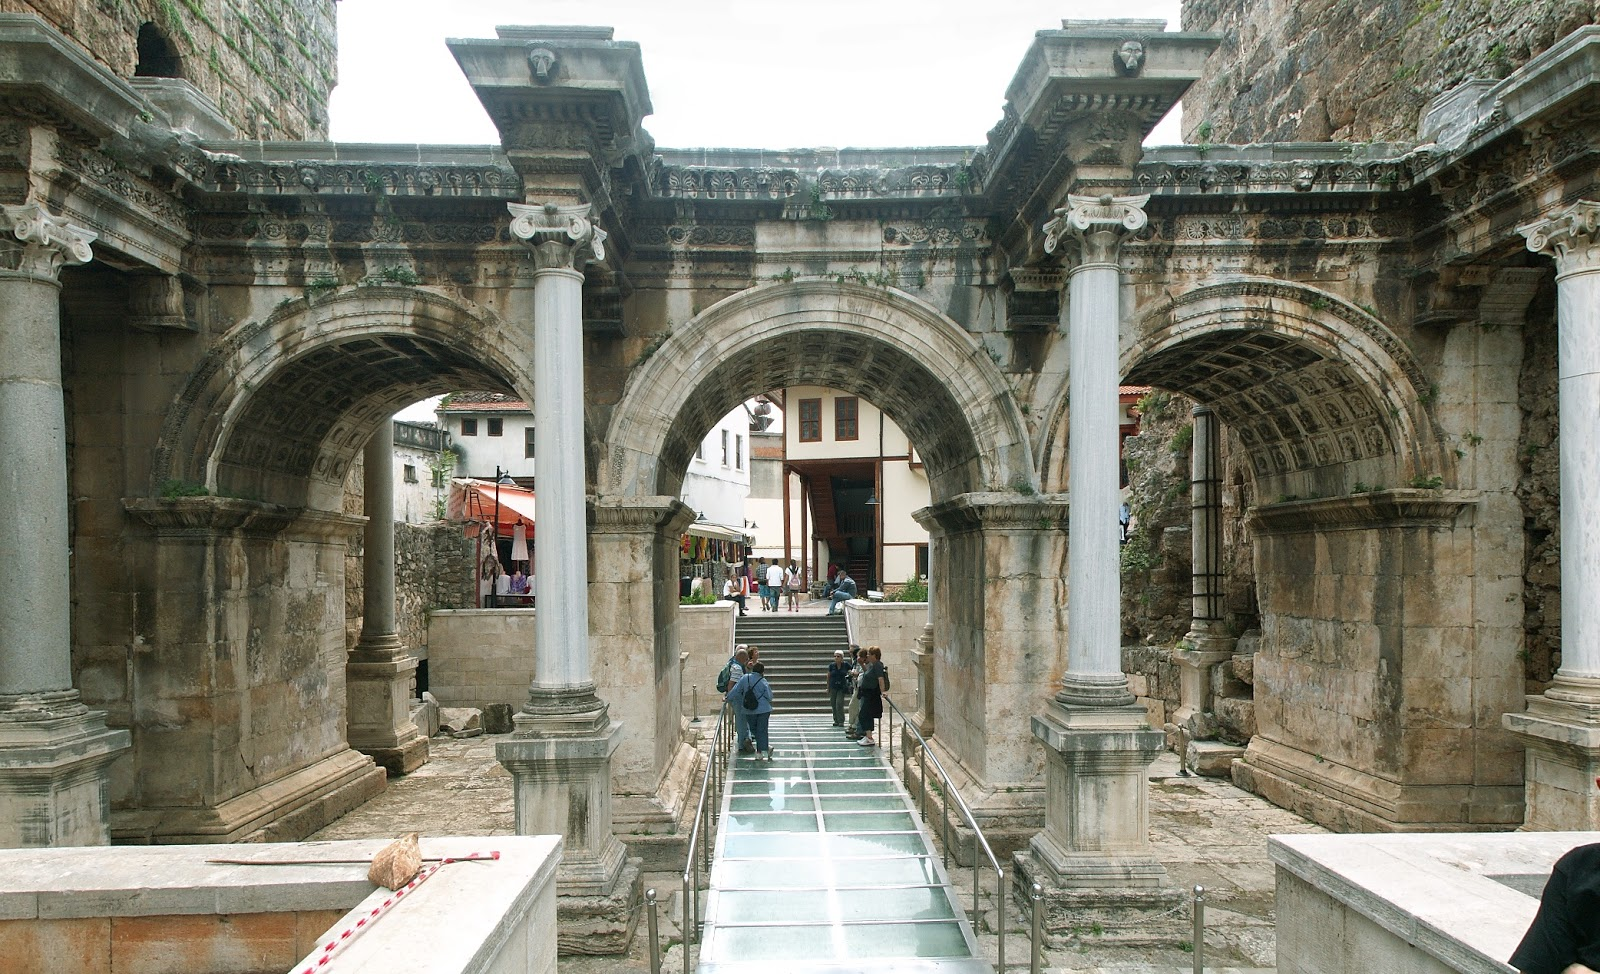 Phoebettmh Travel: (Turkey) – What to see and do in Antalya